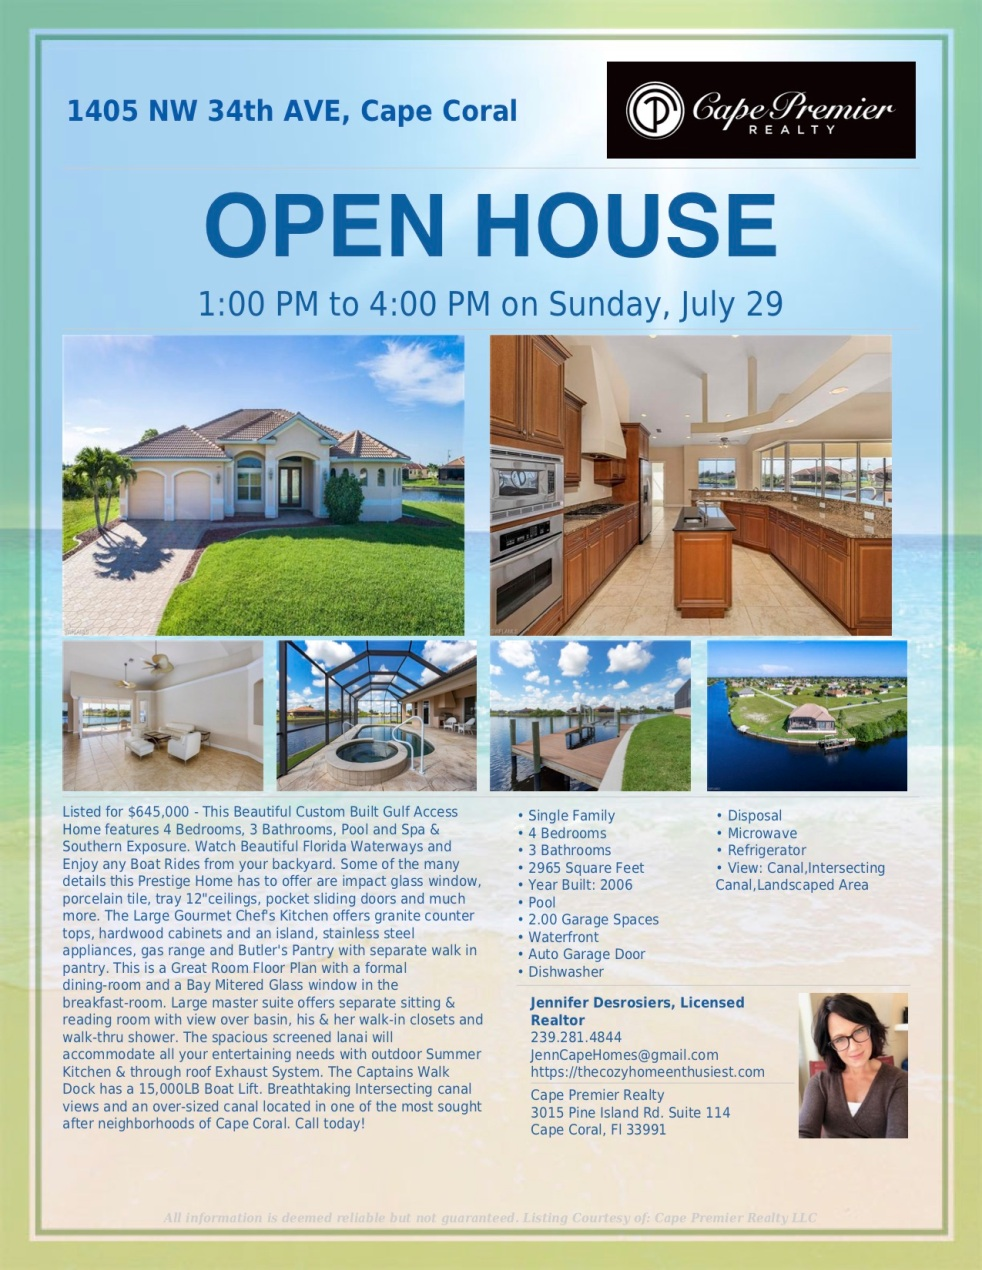 Open House - NW 34th Ave.